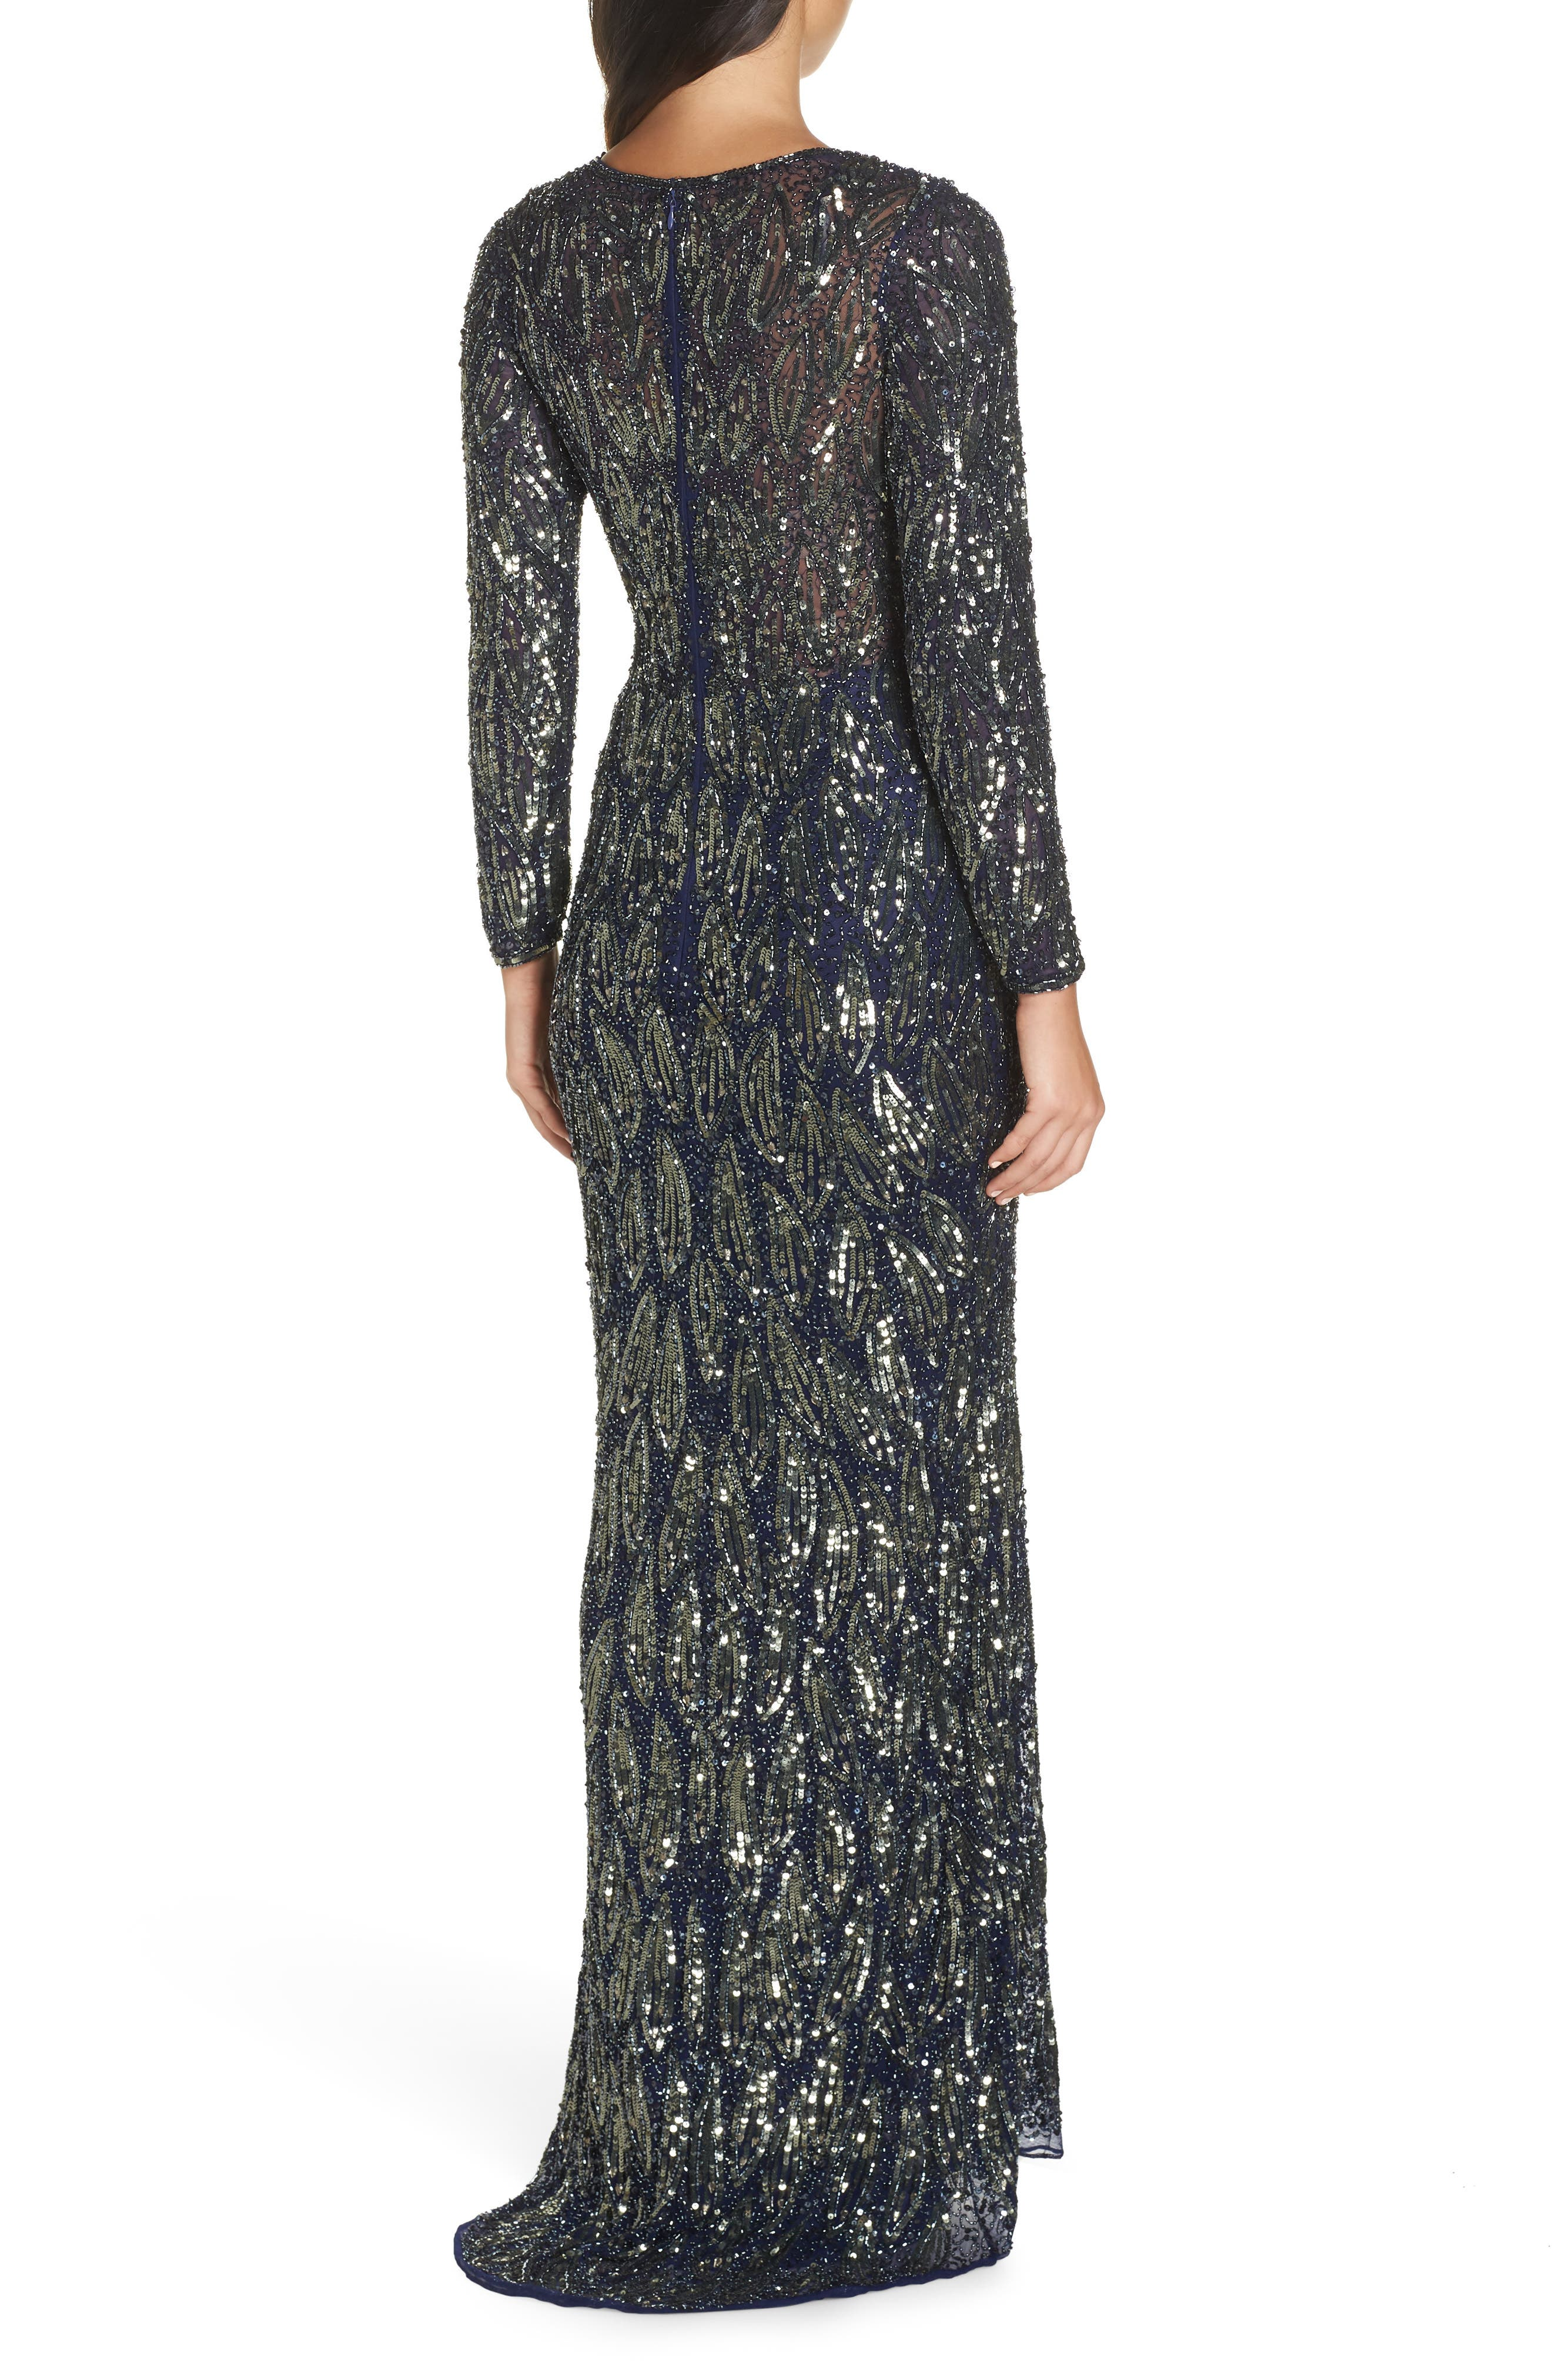 MAC DUGGAL, Beaded Long Sleeve Gown, Alternate thumbnail 2, color, MIDNIGHT